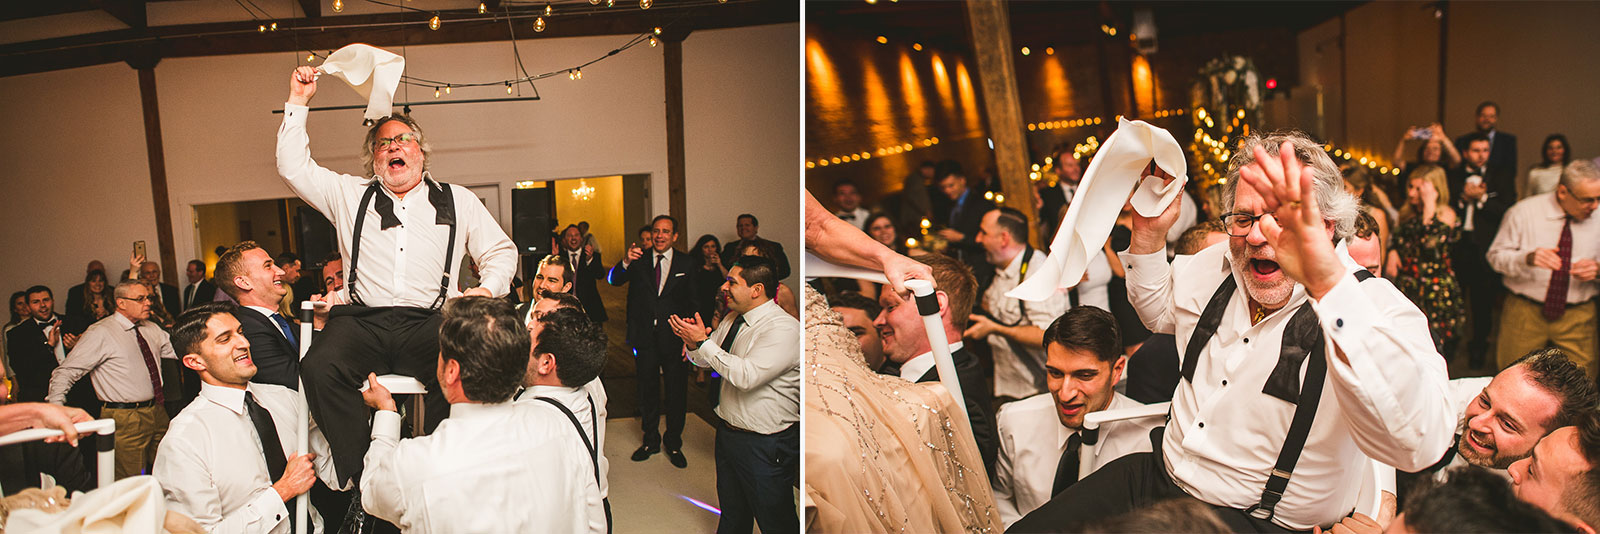 81 epic hora at wedding - Chicago Wedding Photography at Gallery 1028 // Courtnie + David